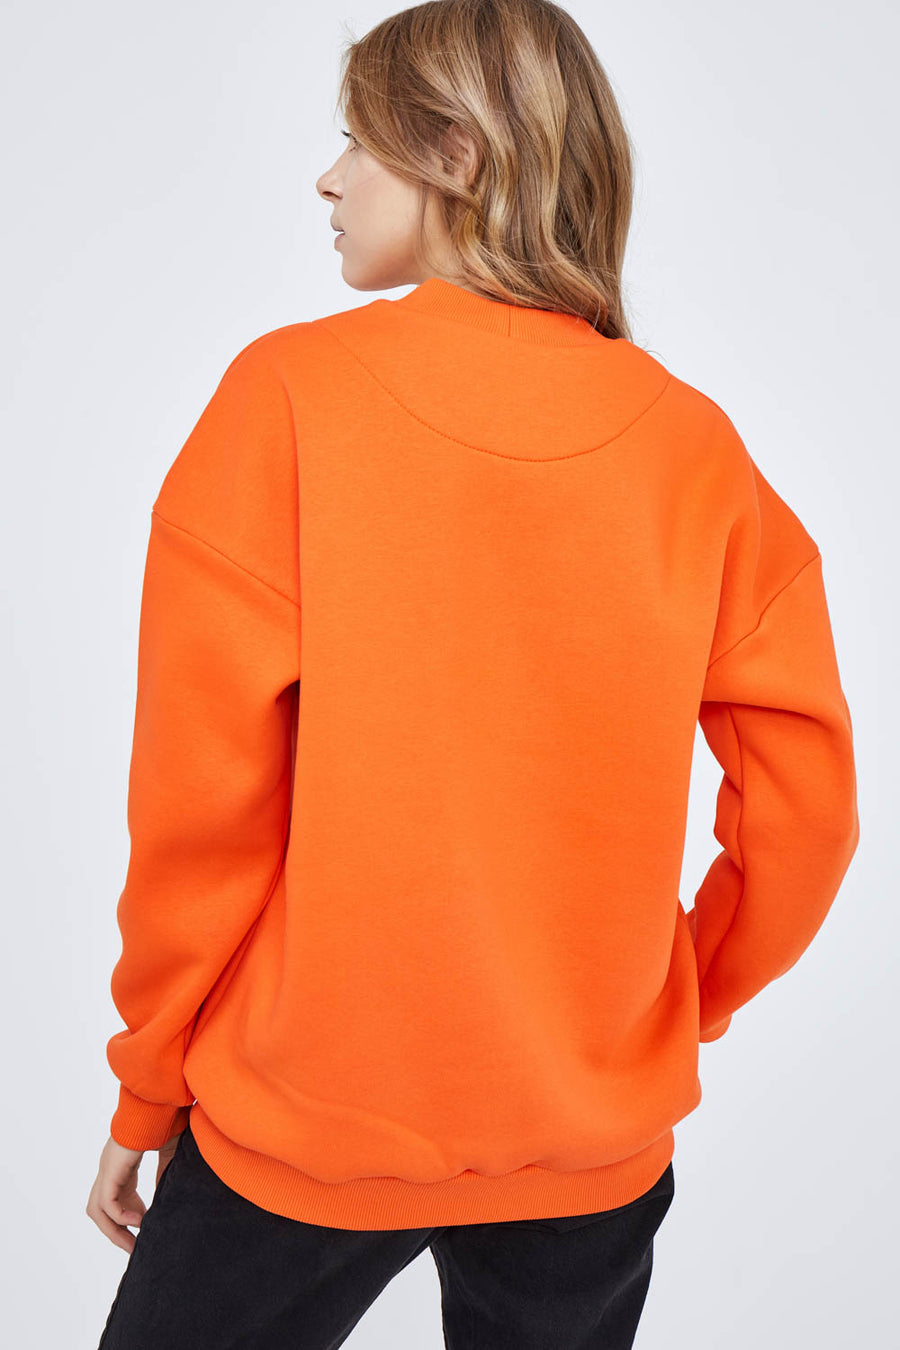 Hands on Heart Sweatshirt in Orange Burst